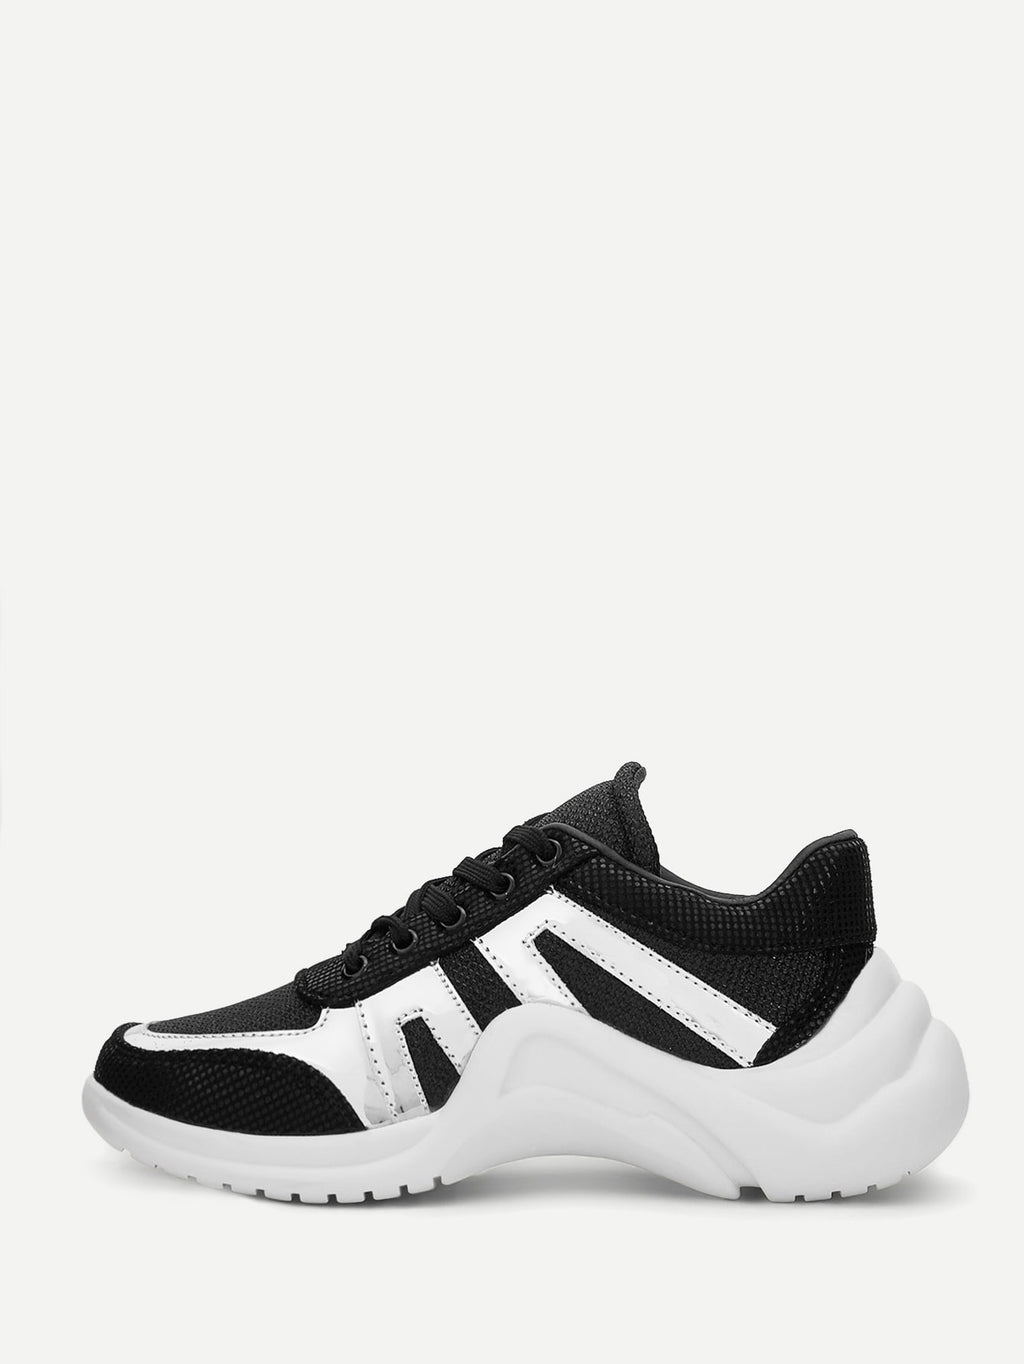 Women's Two Tone Lace-up Chunky Sneakers